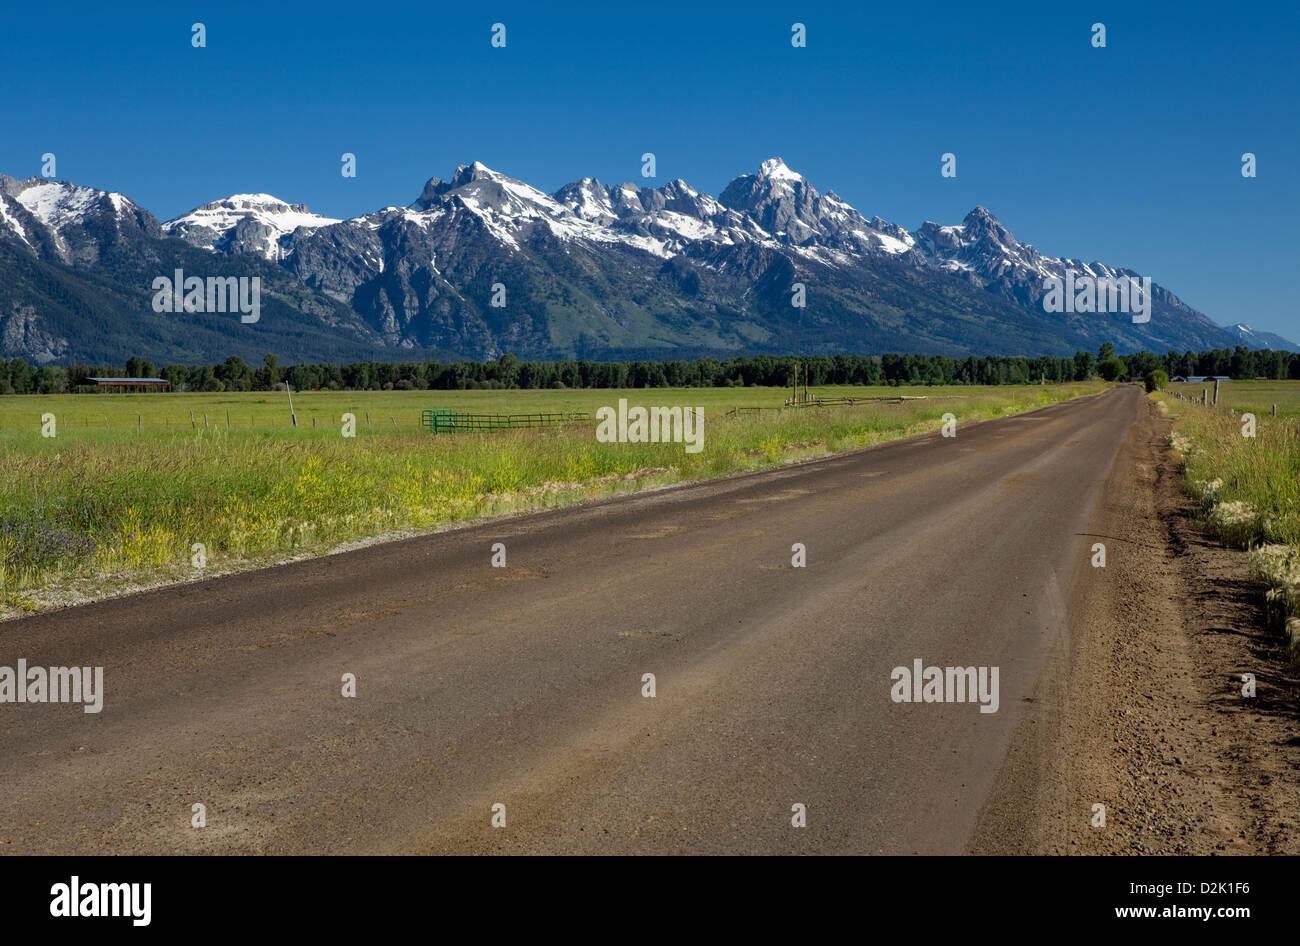 WY00232-00...WYOMING - Spring Gulch Road in Jackson with the Teton Range in the background. - Stock Image